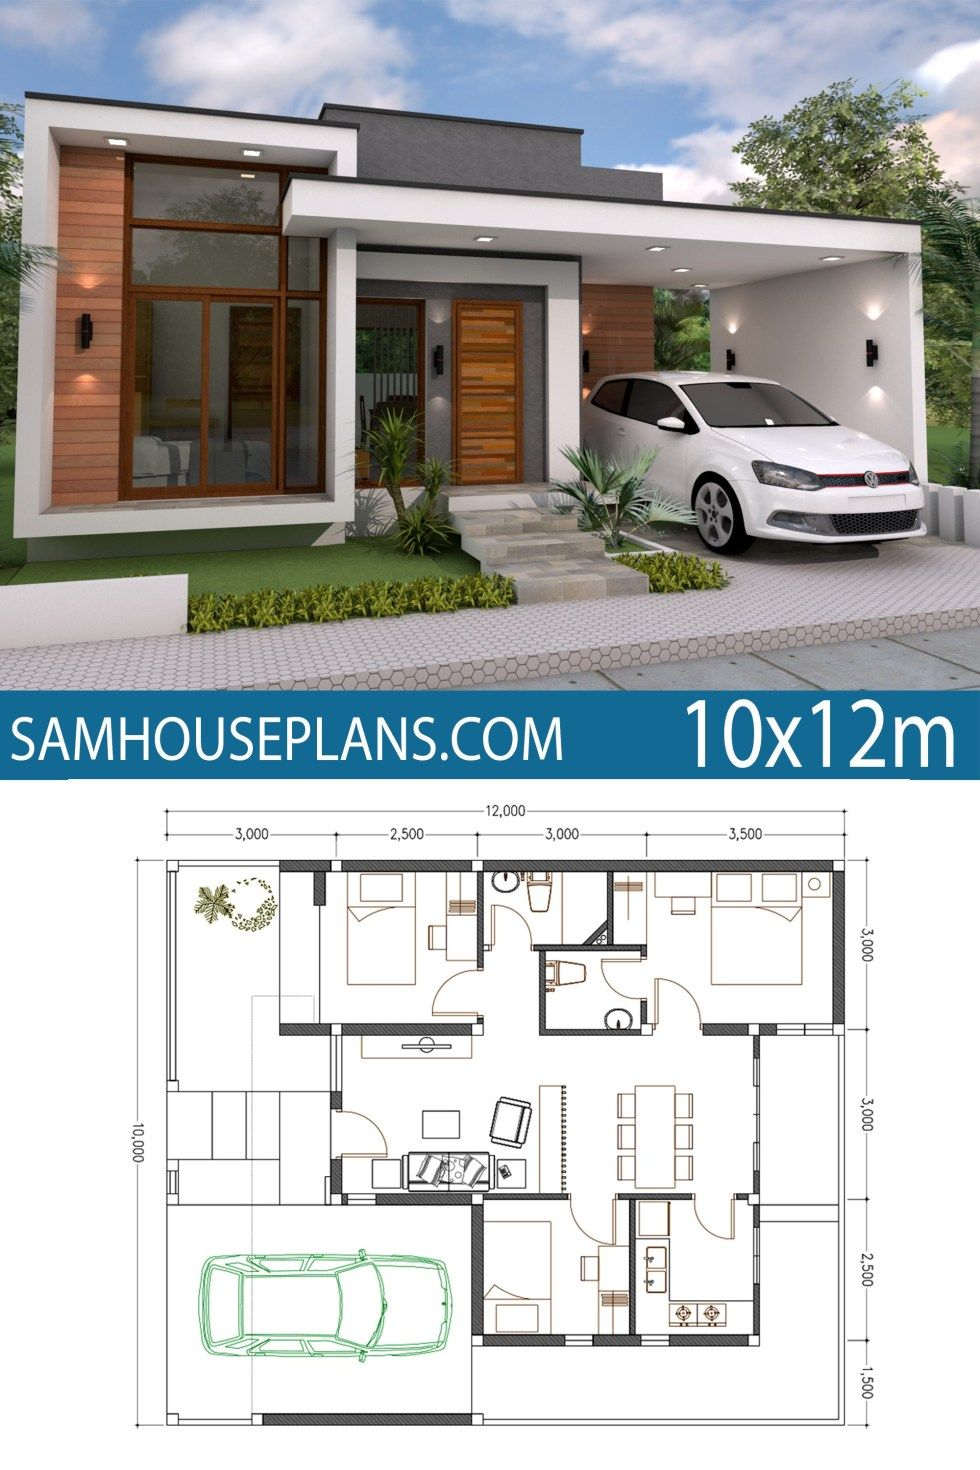 Home Plan 10x12m 3 Bedrooms Sam House Plans Bungalow House Plans Small House Design Plans Simple House Design